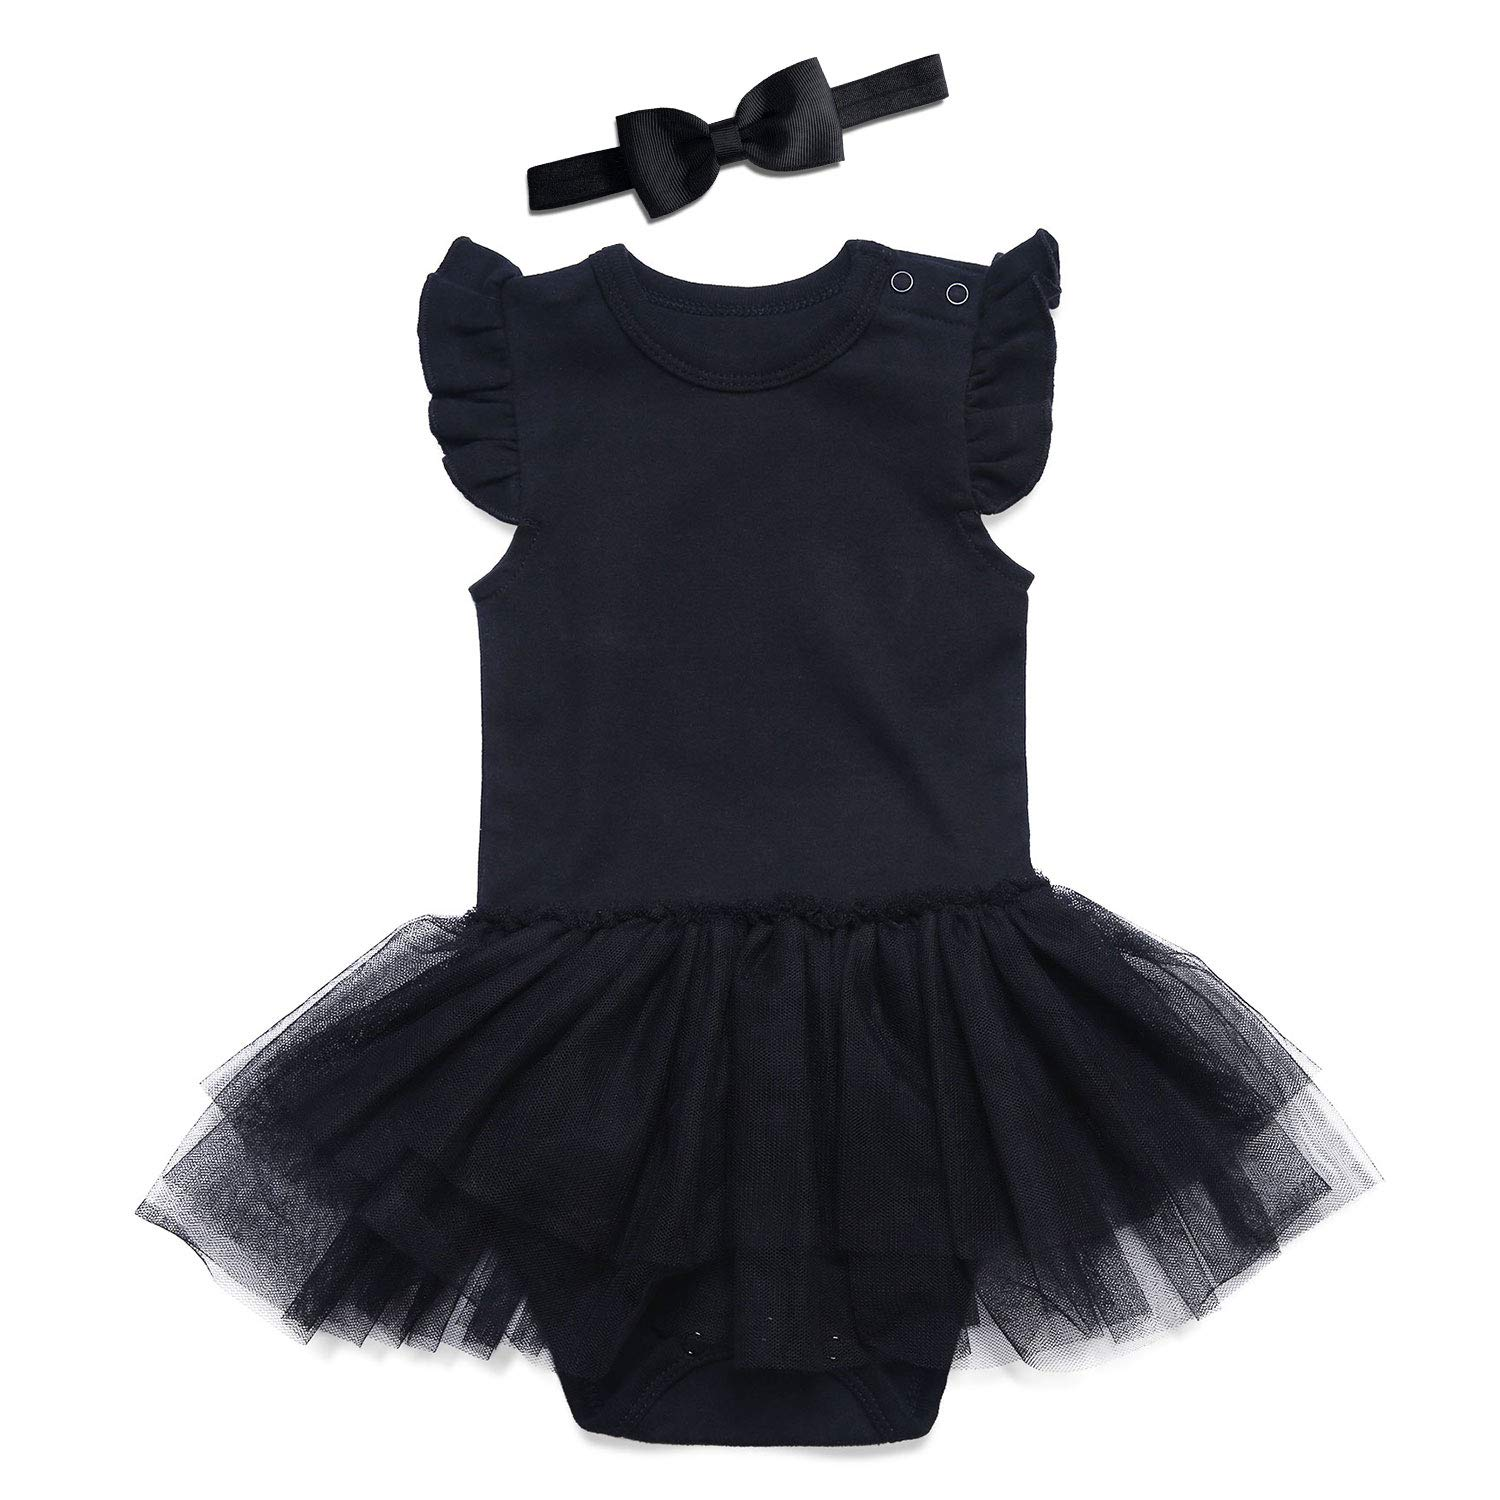 SOBOWO Black Baby Girls Lace Dress Bodysuit with Headband